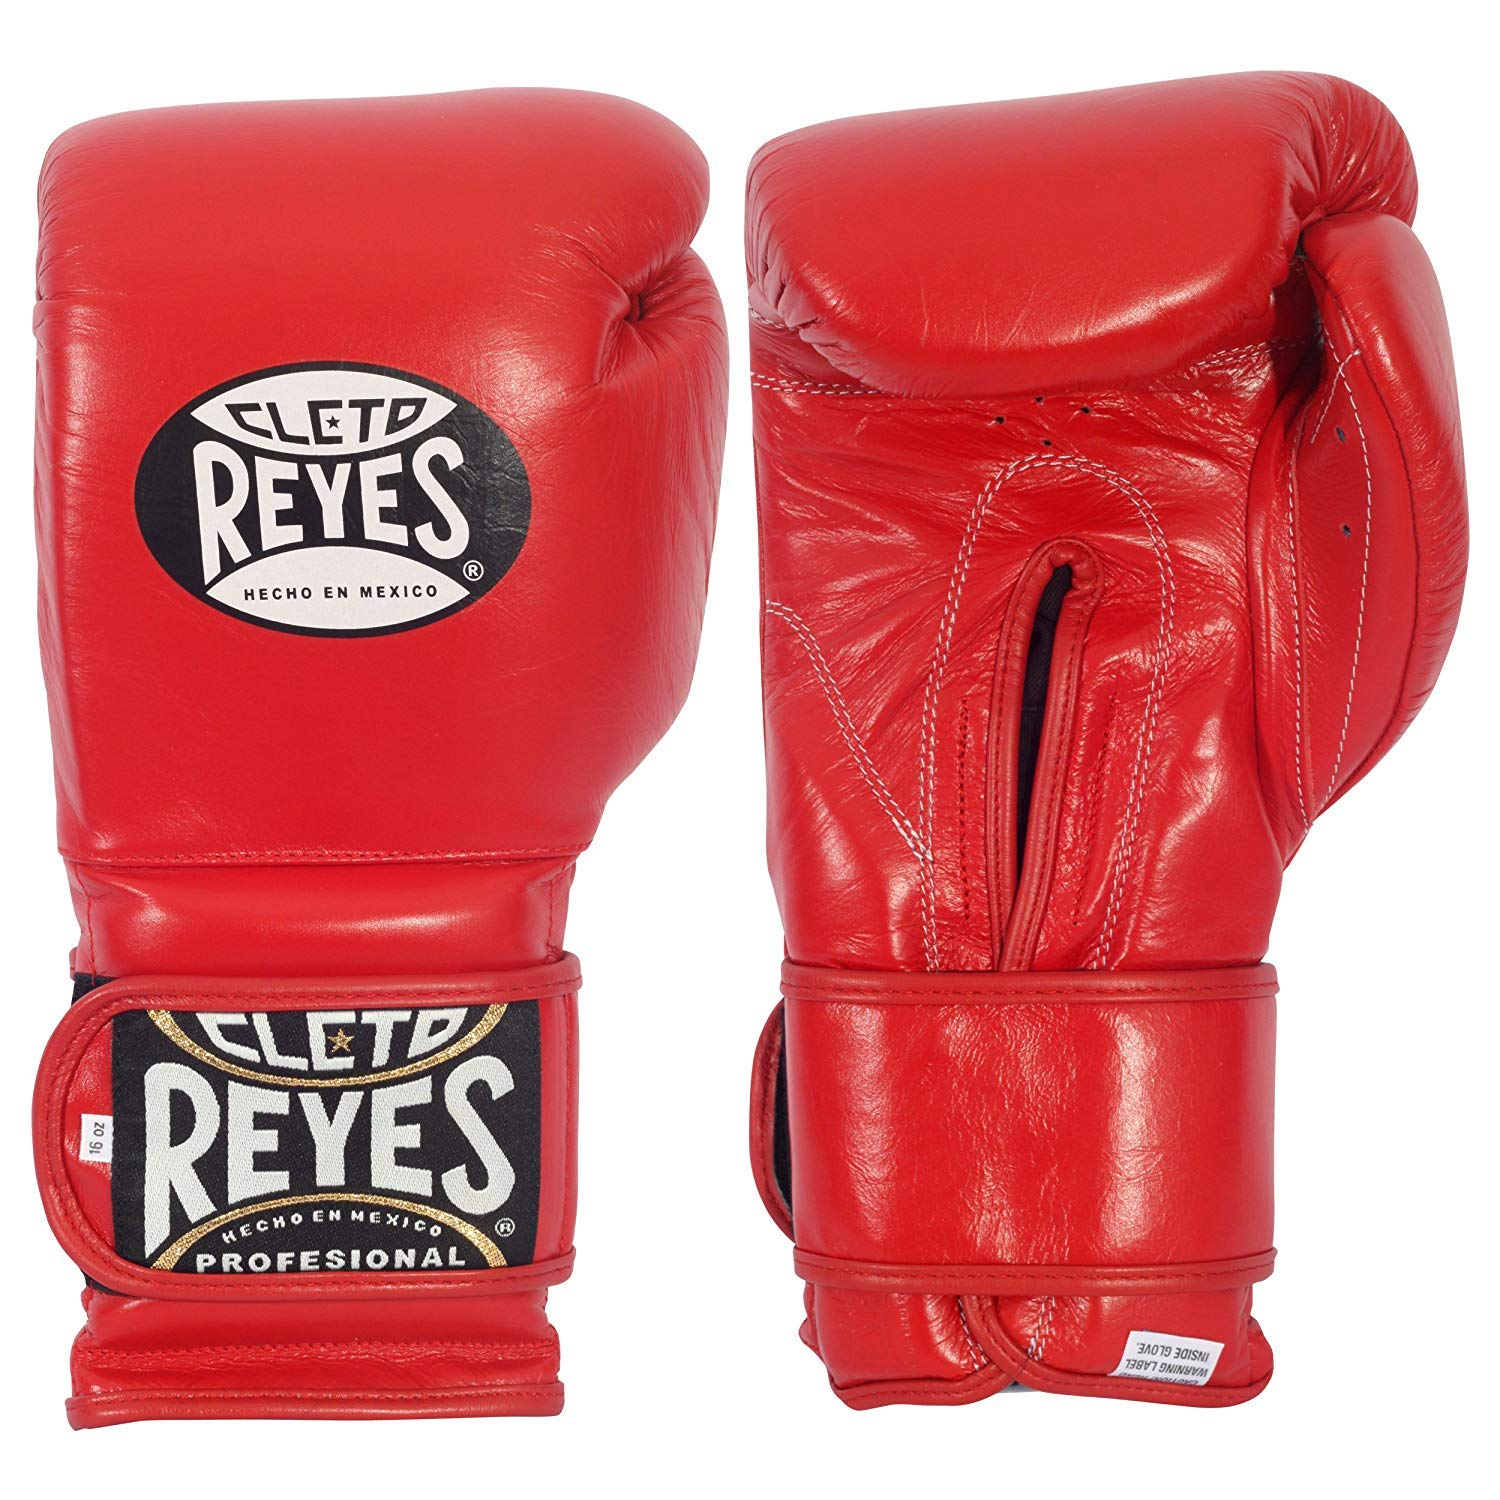 Black Cleto Reyes Leather Boxing Bag Gloves with Hook and Loop Closure